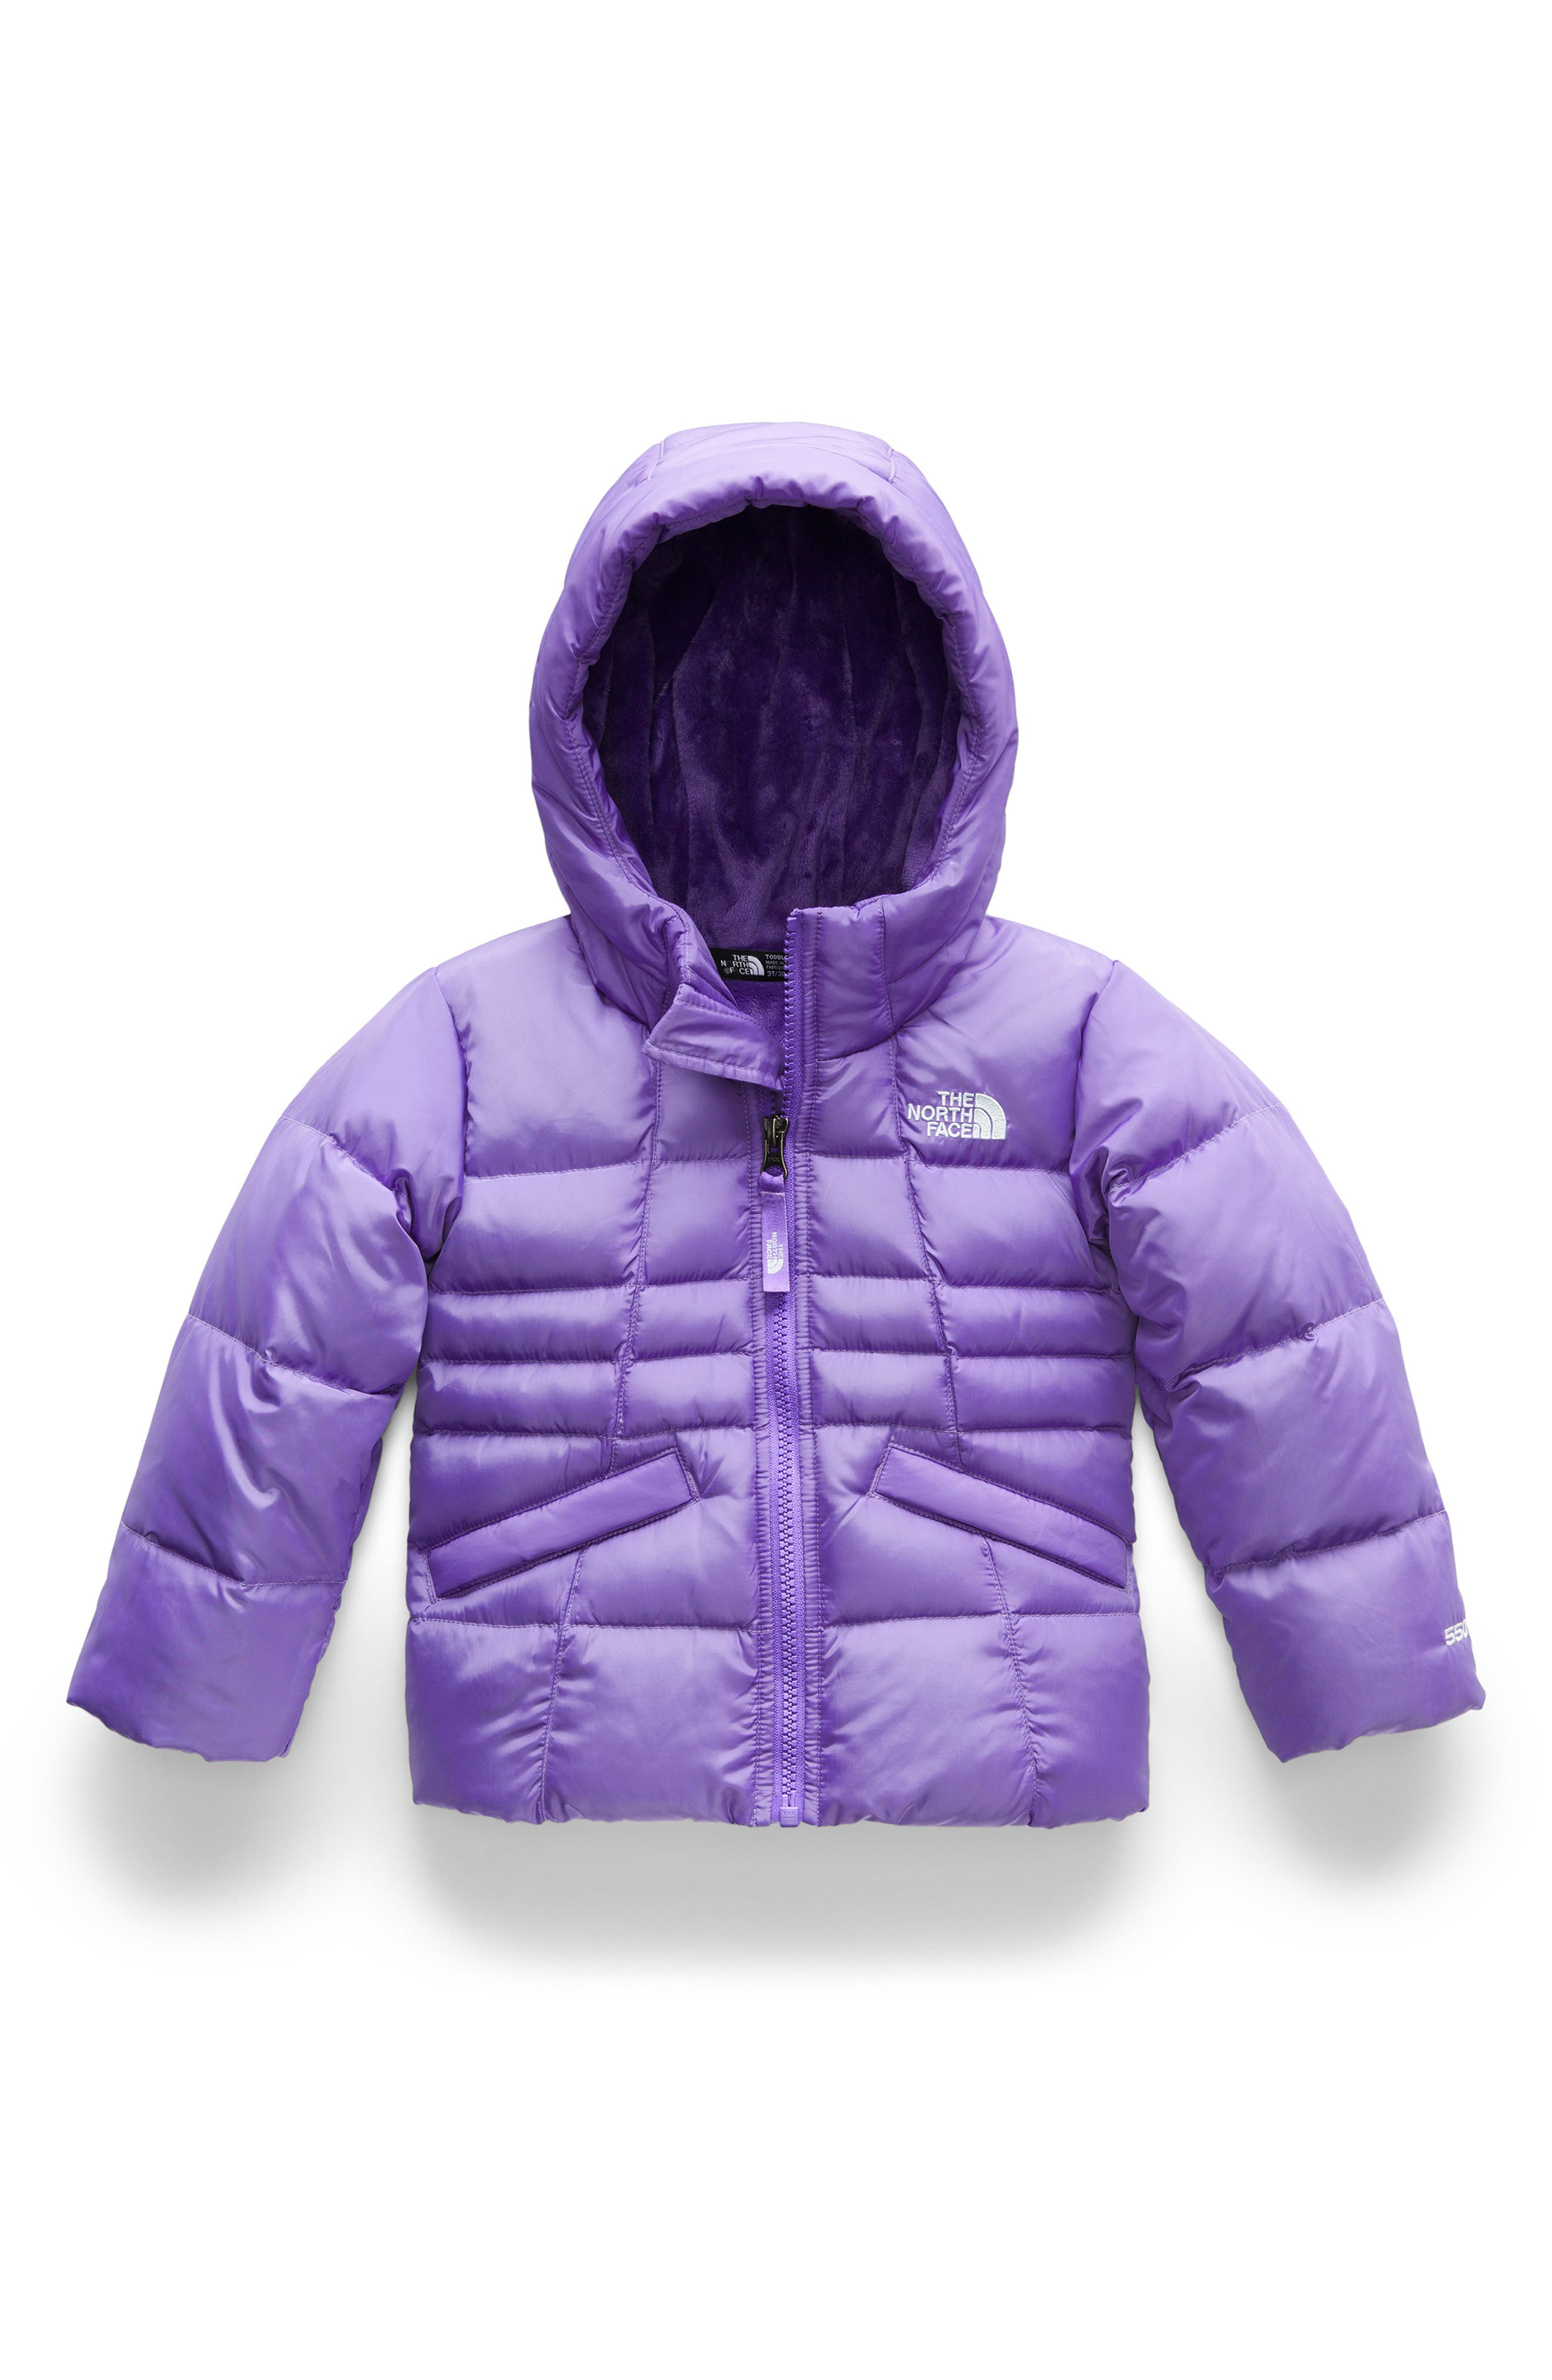 THE NORTH FACE,                             Moondoggy 2.0 Water Repellent Down Jacket,                             Main thumbnail 1, color,                             501